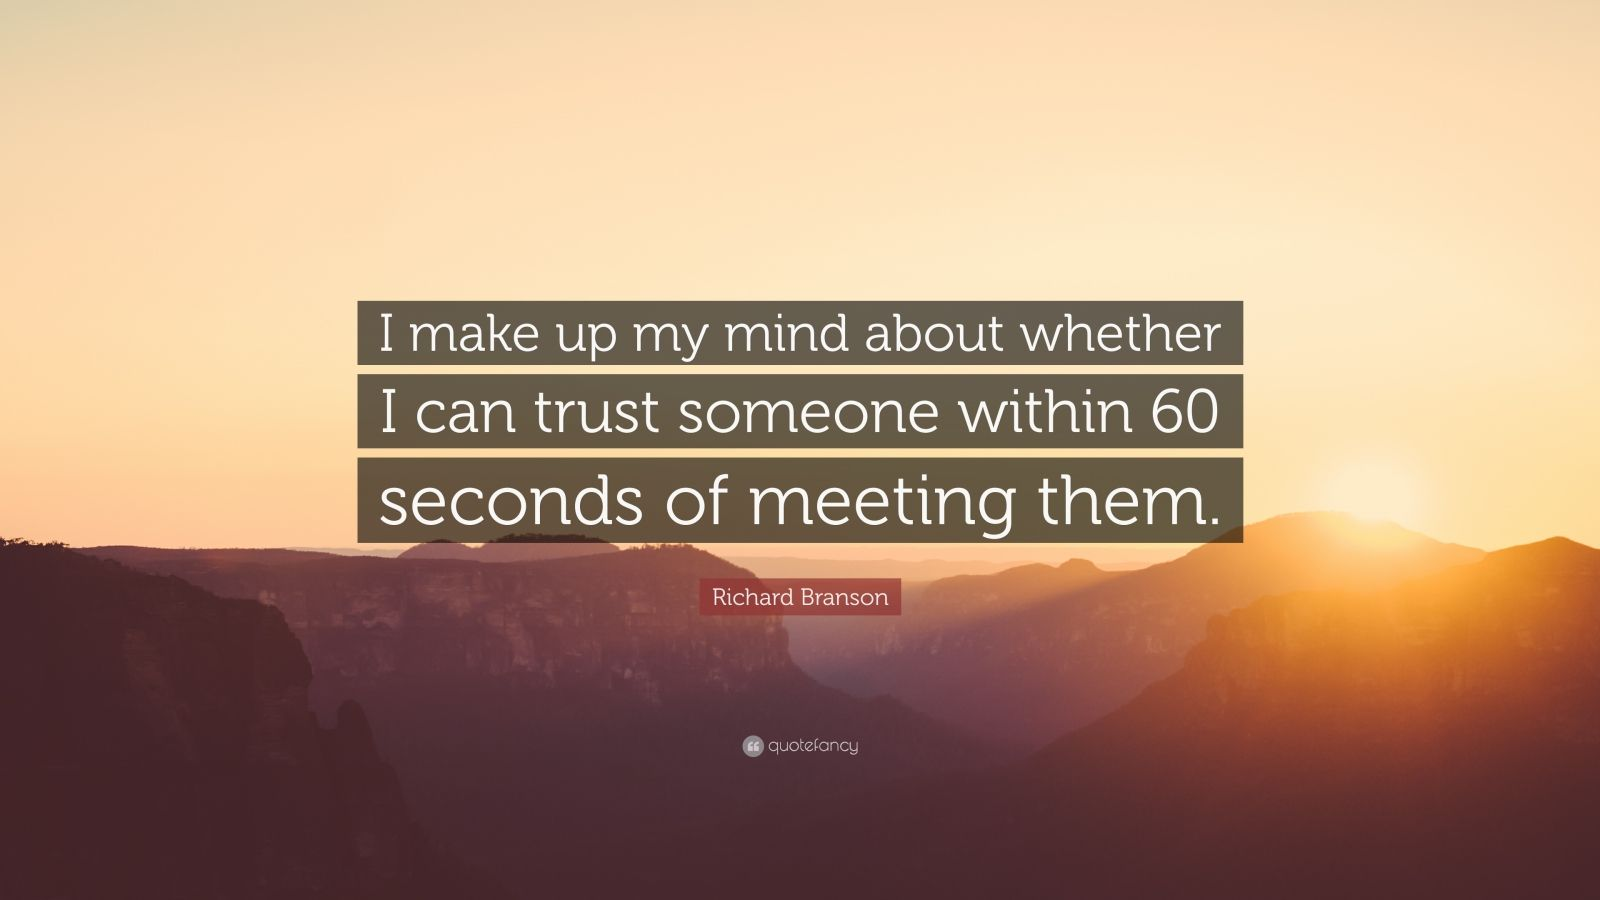 """Richard Branson Quote: """"I make up my mind about whether I can trust someone within 60 seconds of meeting them."""""""